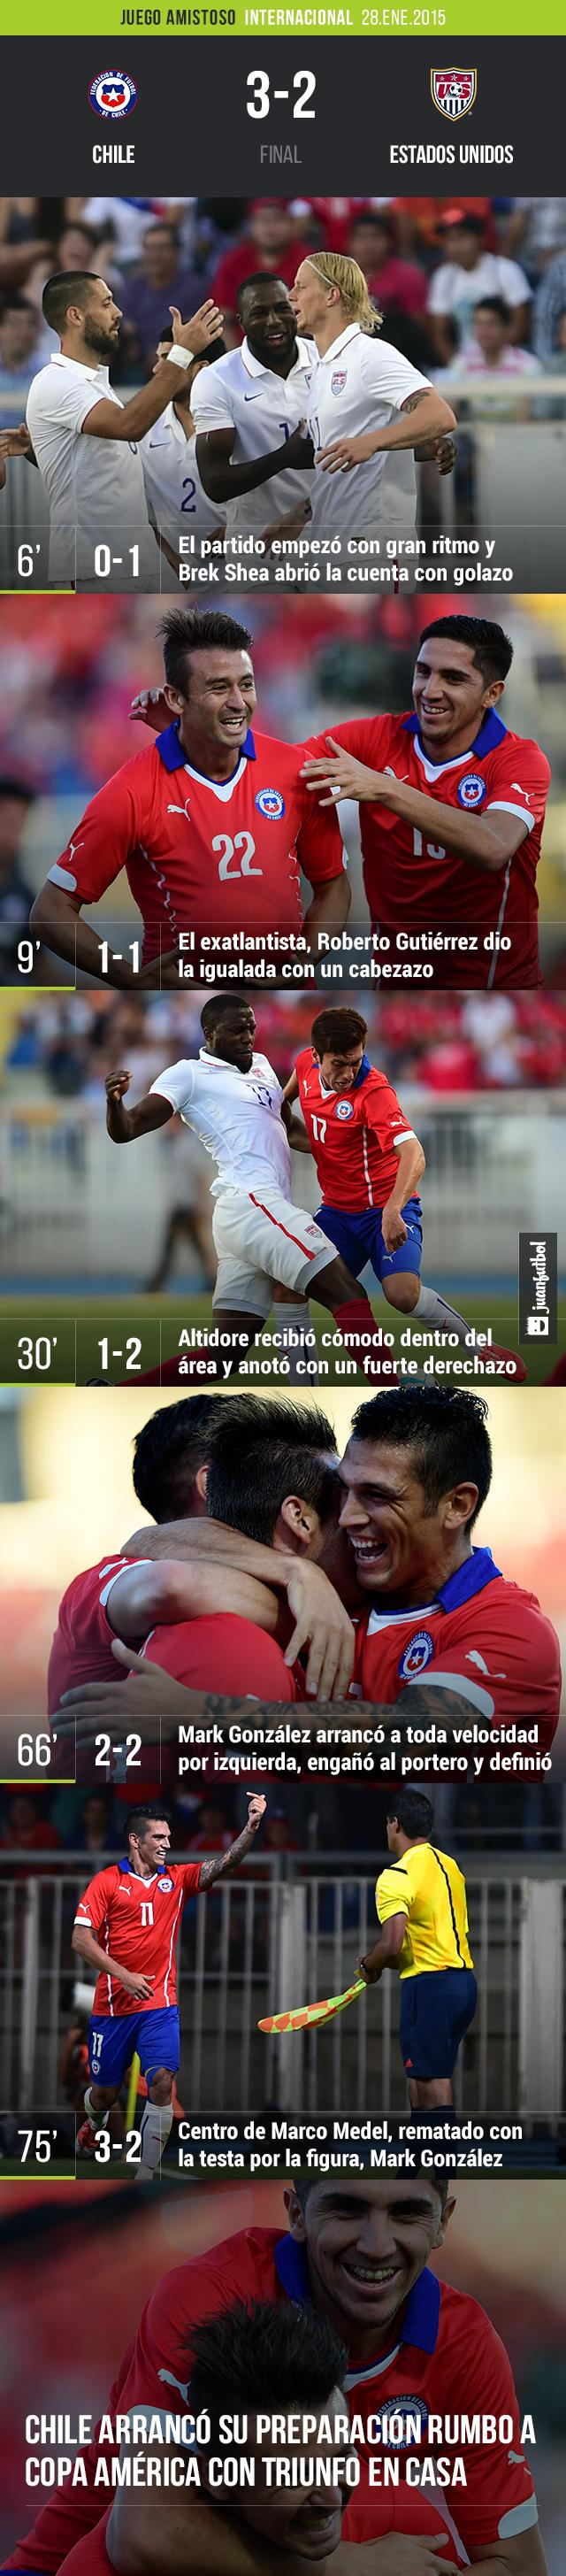 Chile vs. Estados Unidos